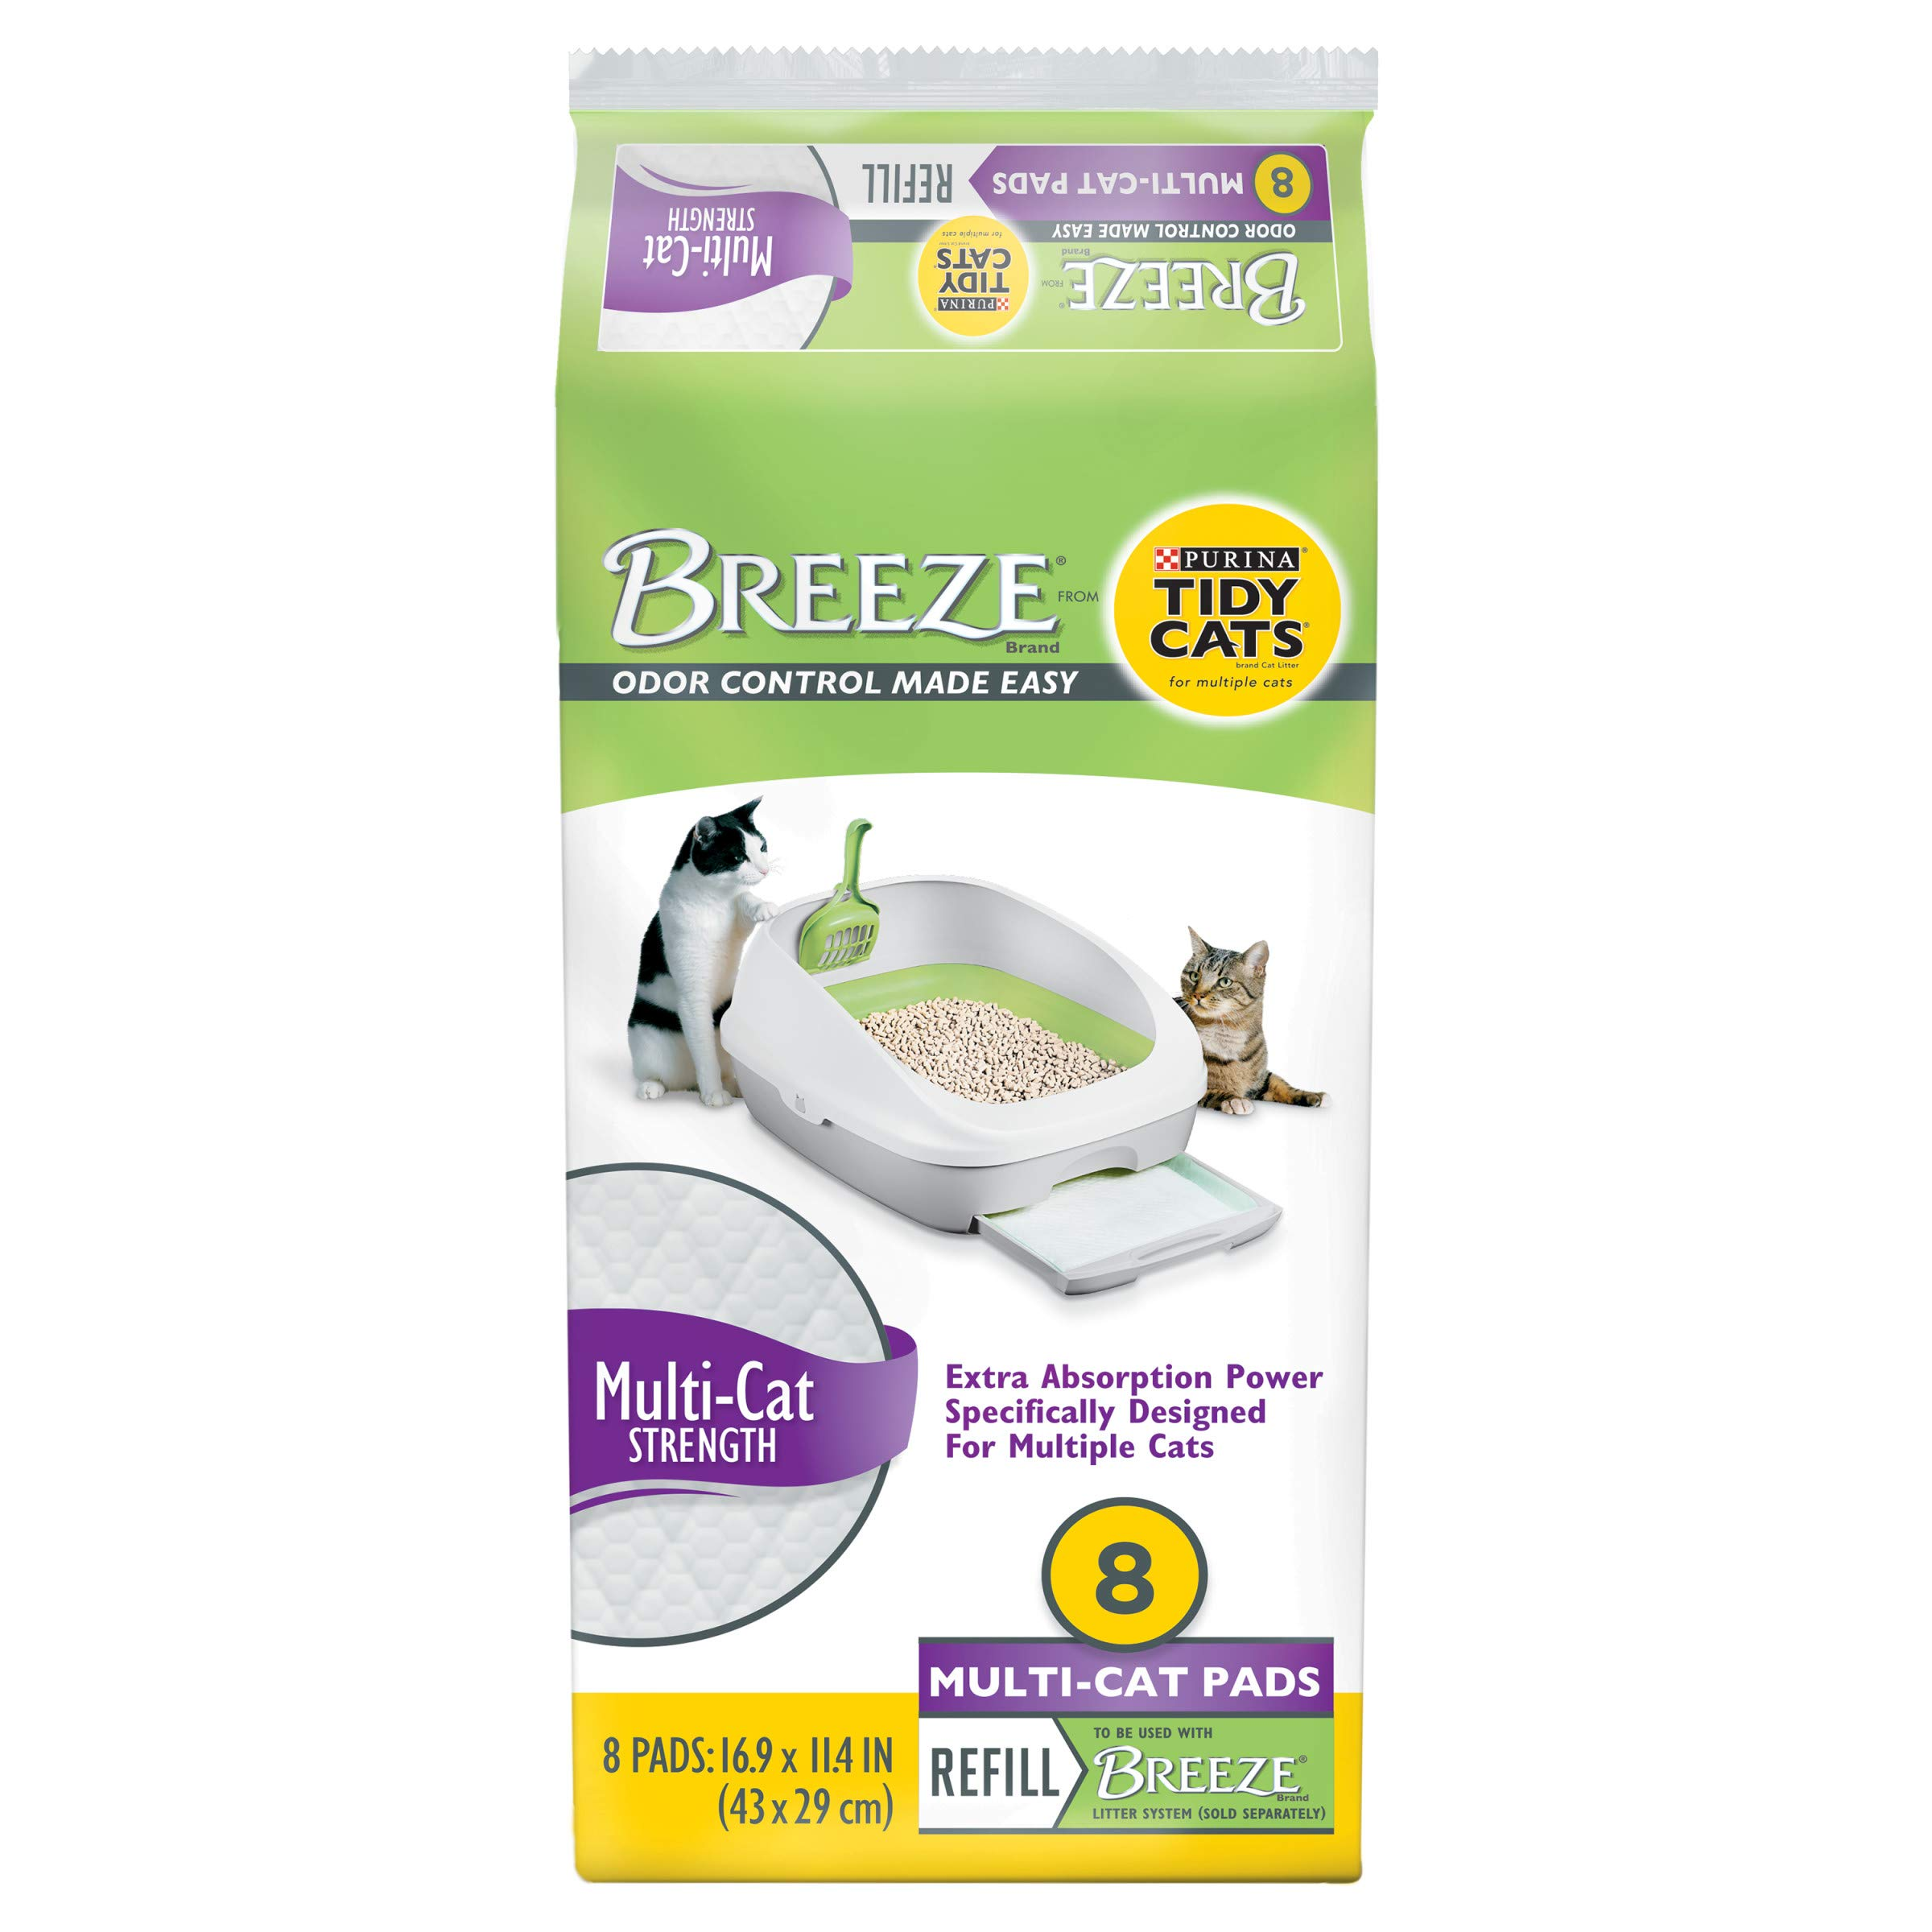 Purina Tidy Cats Cat Litter Accessories, BREEZE Pads Refill Pack Multi Cat Litter - 8 ct. Bag by Purina Tidy Cats